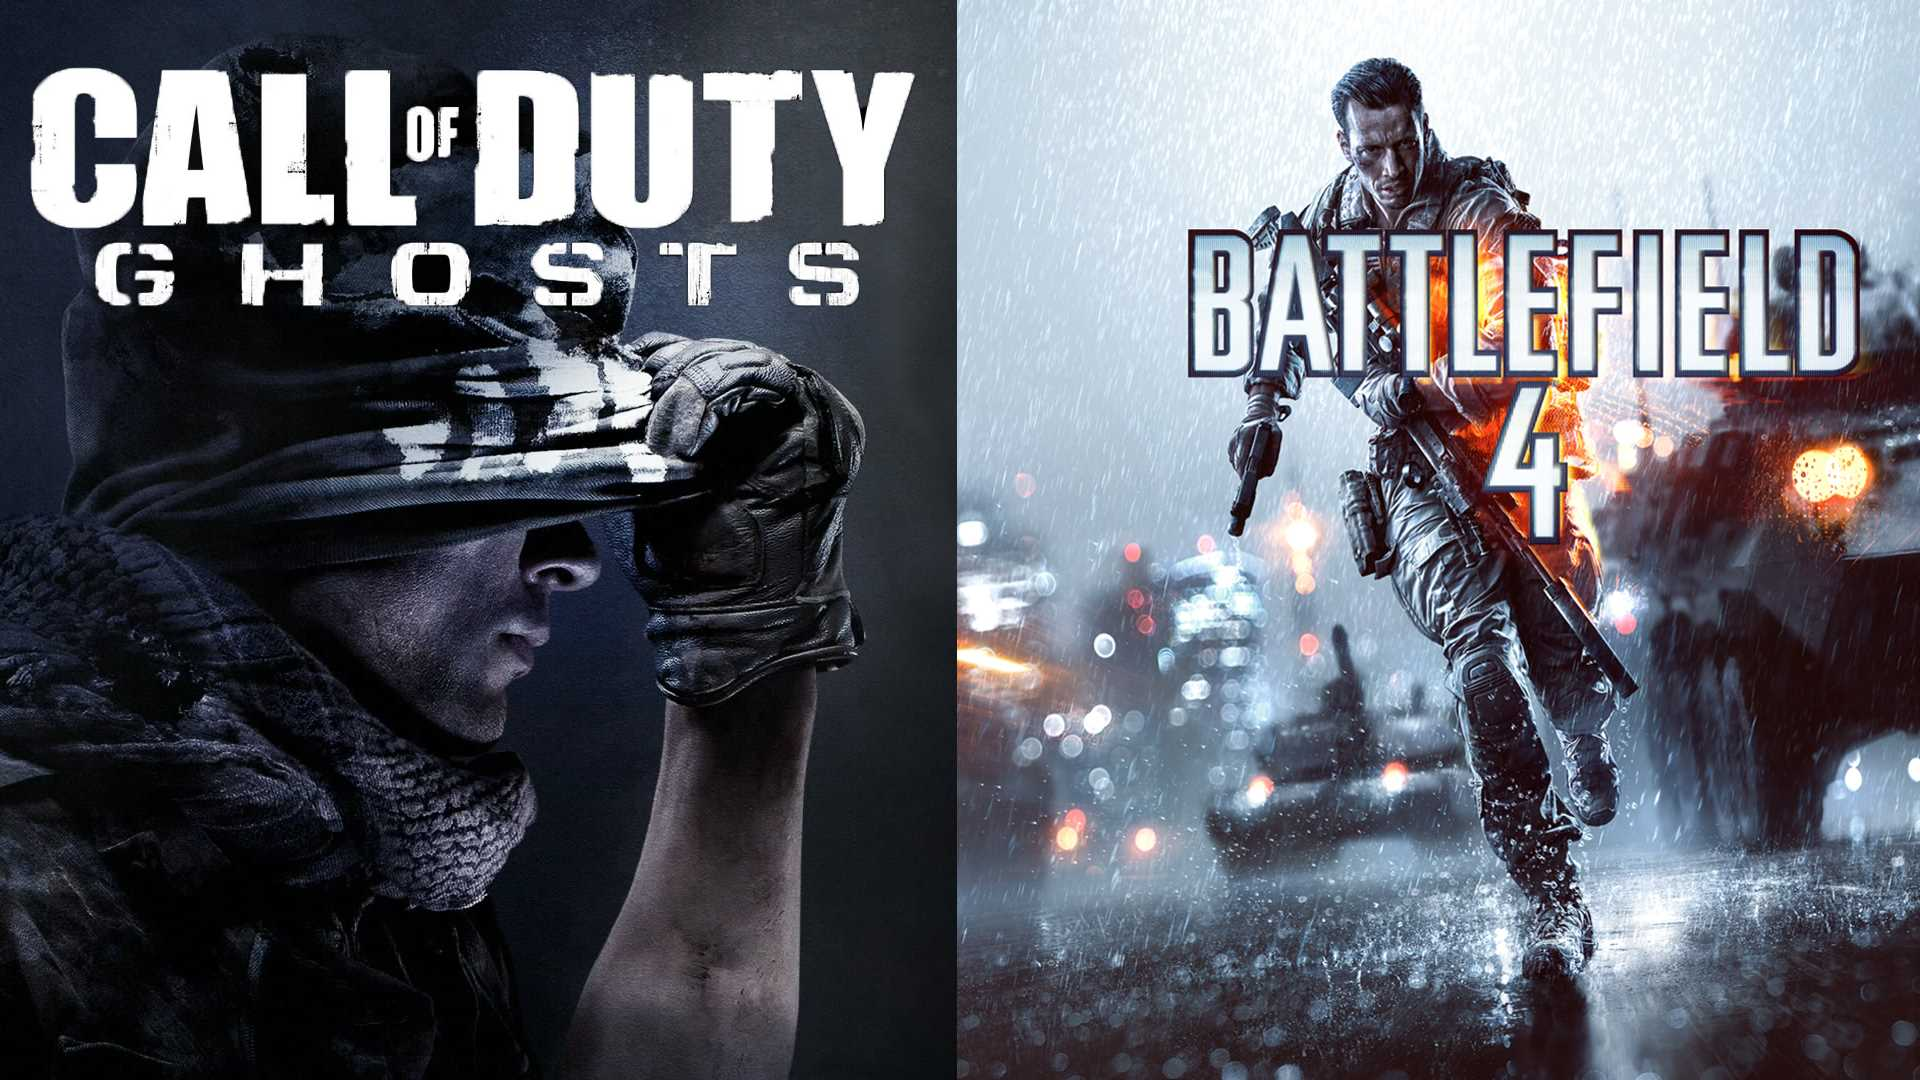 Battlefield 4 vs Call of Duty Ghosts - netivist